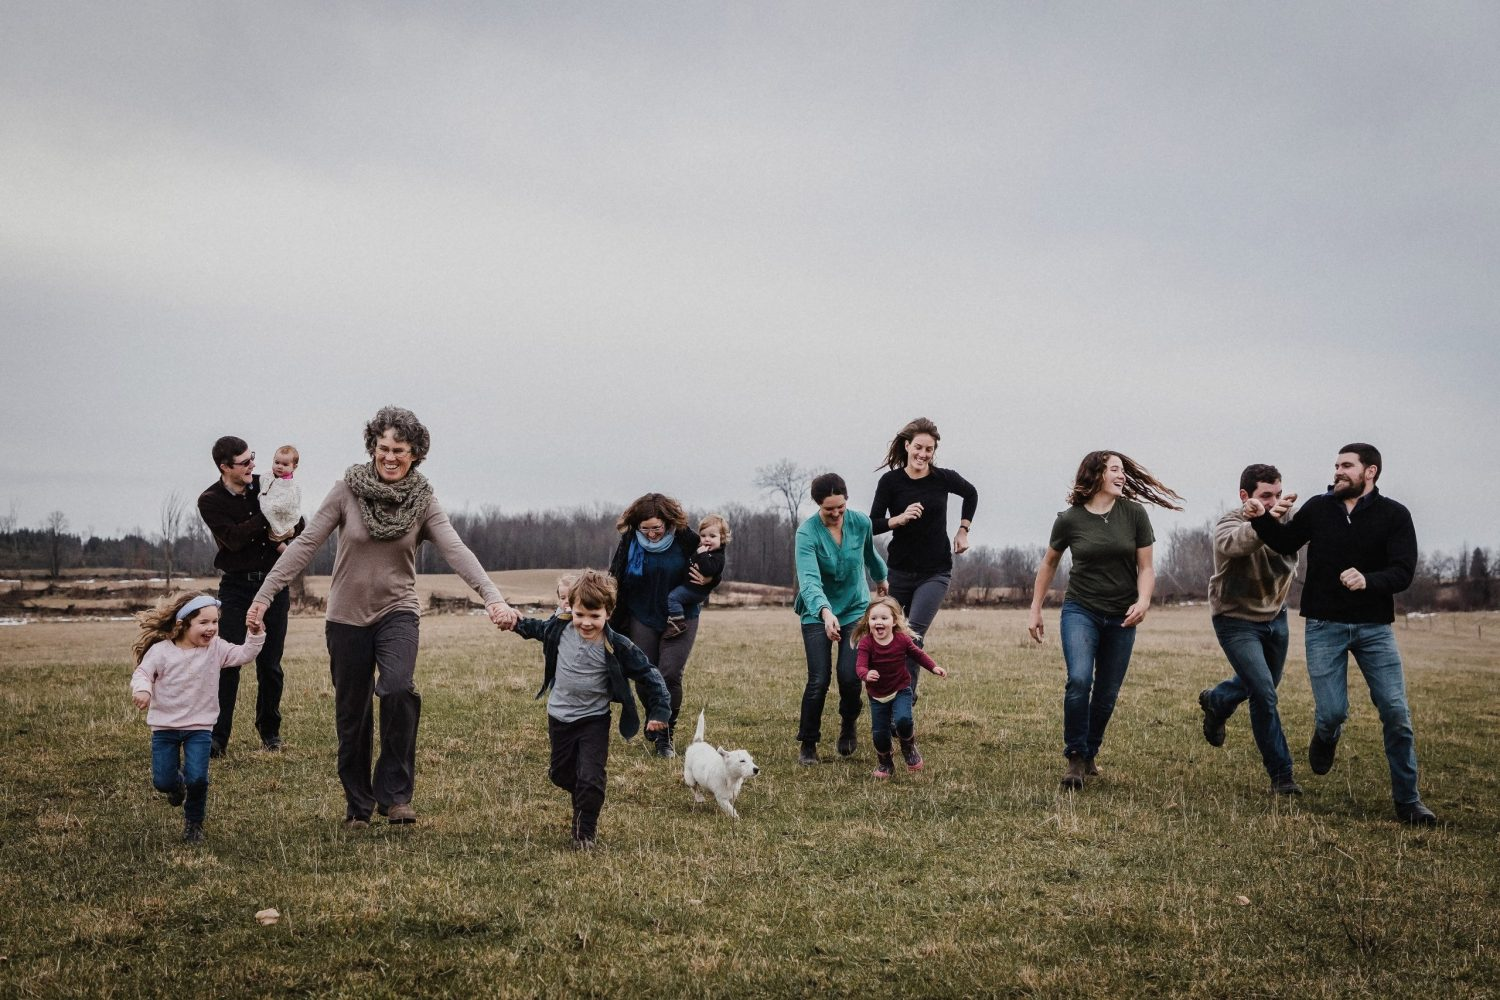 family running through farm field in ontario for ontario family photo session by ontario family photographer heather doughty photography